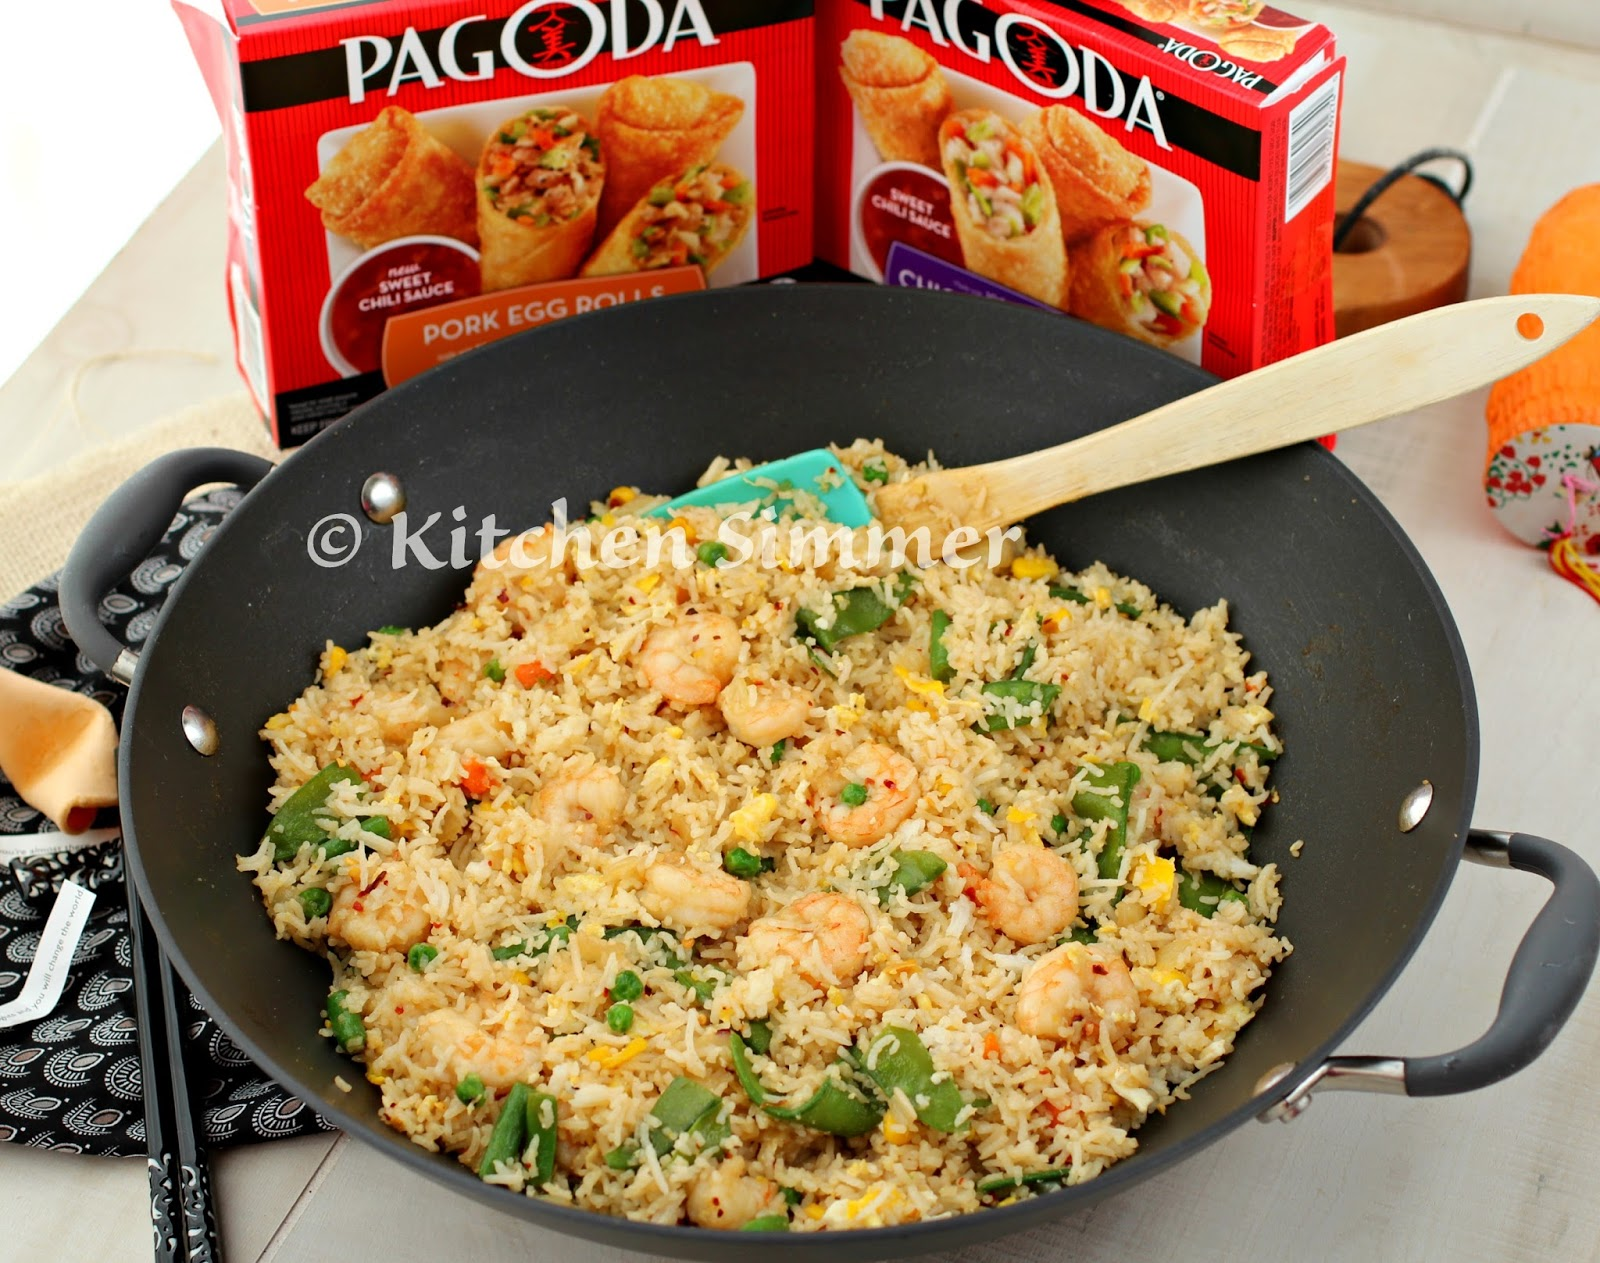 Kitchen simmer easy shrimp fried rice with pagoda egg rolls easy shrimp fried rice with pagoda egg rolls frozenfromscratch collectivebias ccuart Image collections